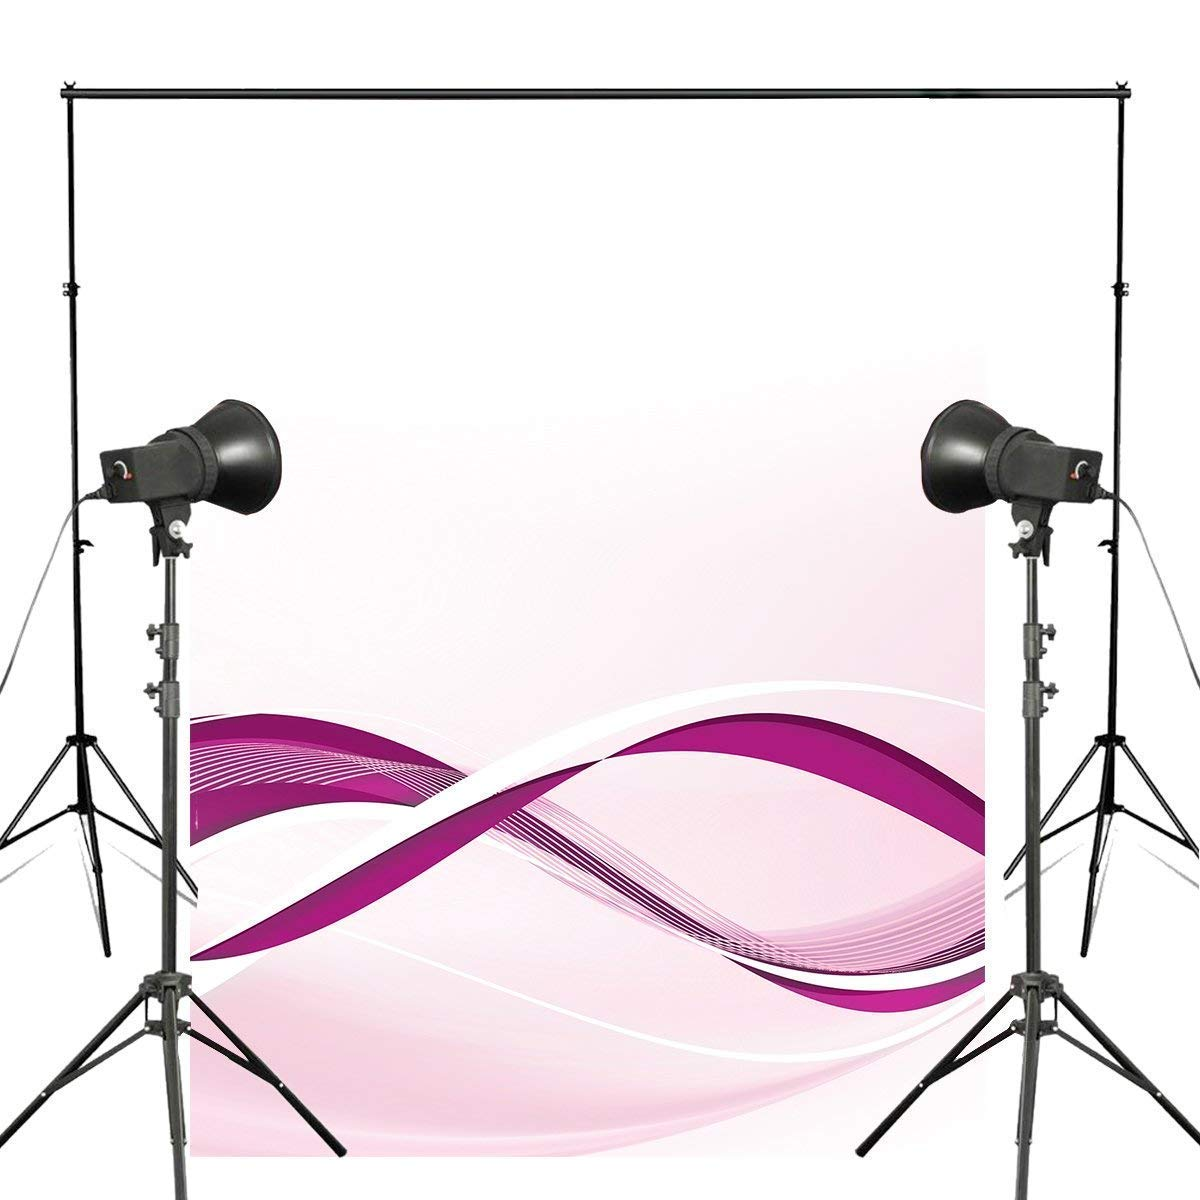 ERTIANANG Flow line Image Background Photography Purple Photography Backdrops Art Photo Studio Background 5x7ft